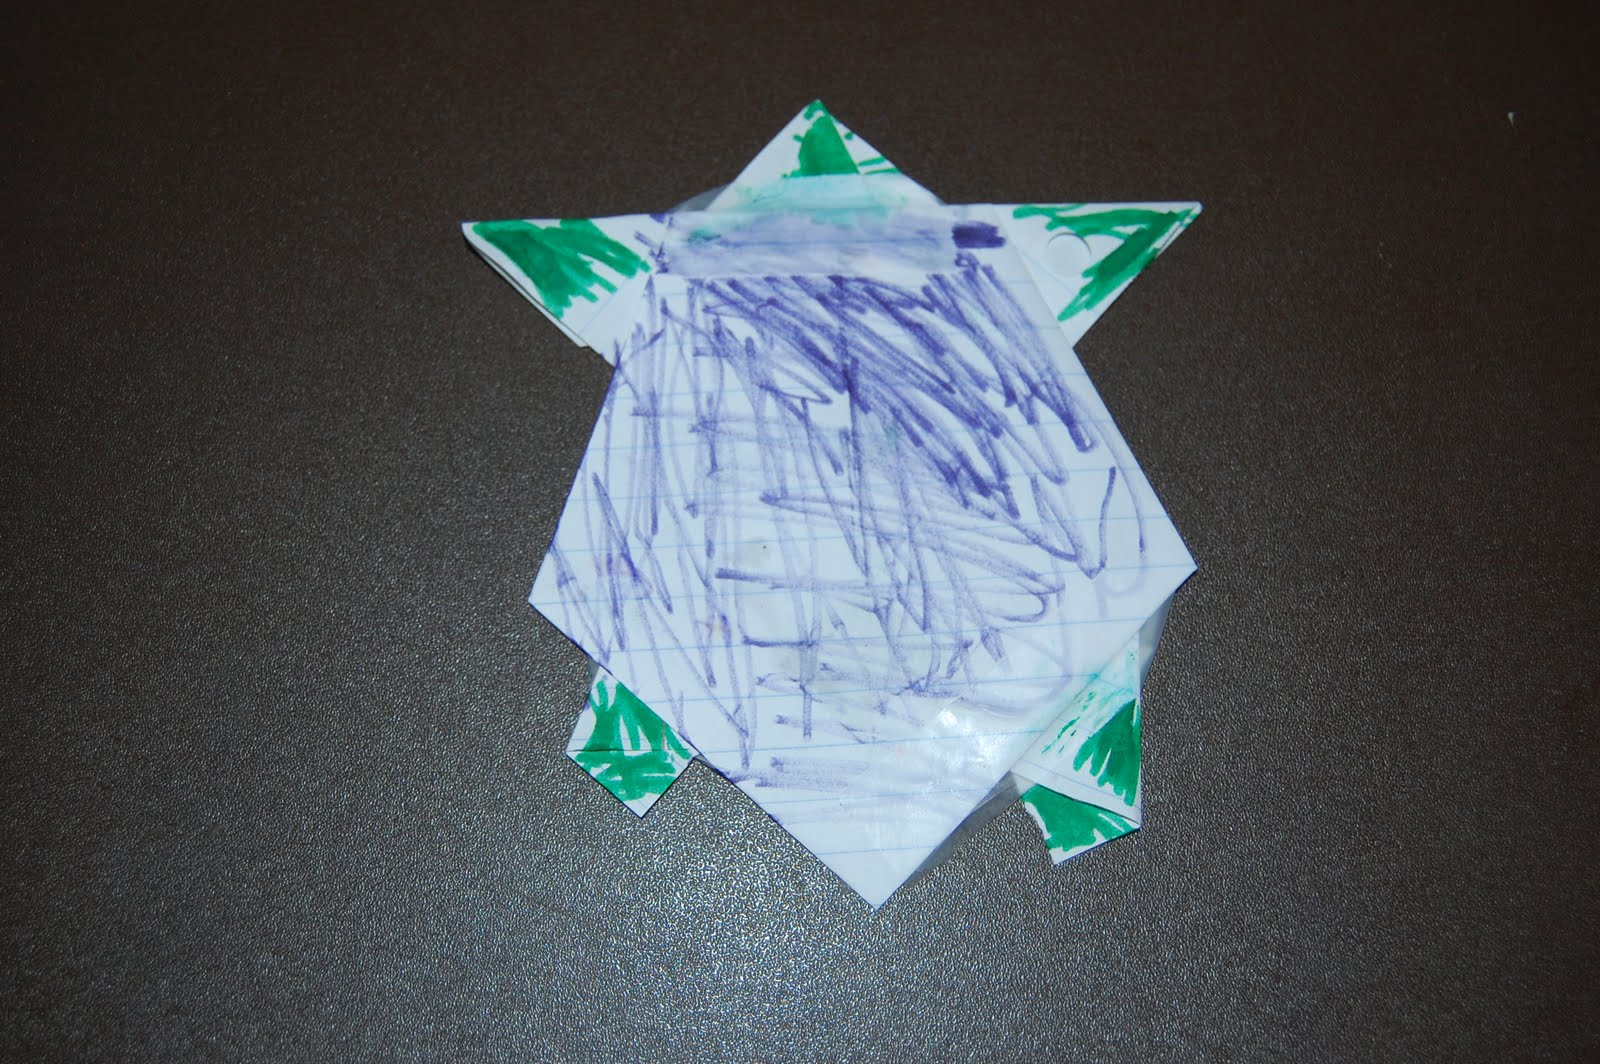 Quick Craft For Boys: Origami Turtles | From The Land of ... - photo#14